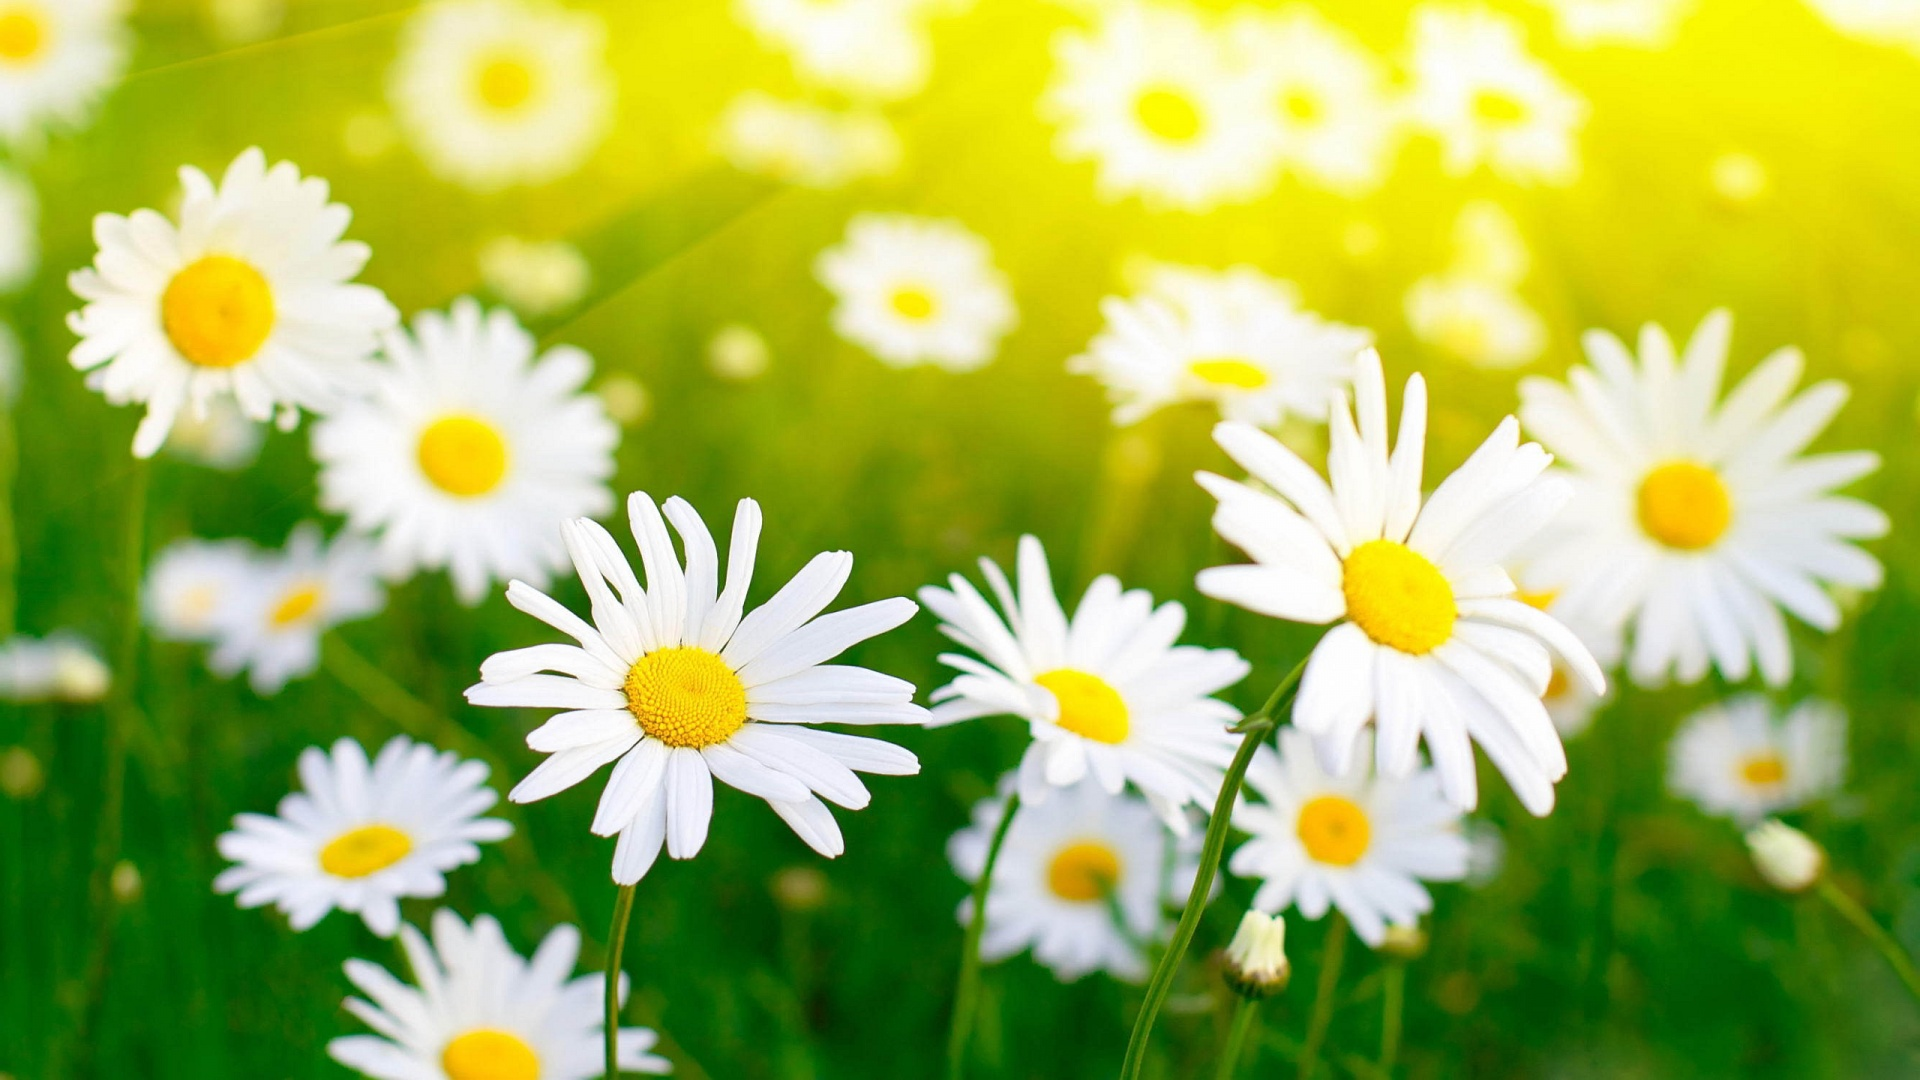 Download White Flowers 7708 1920x1080 px High Resolution Wallpaper ...